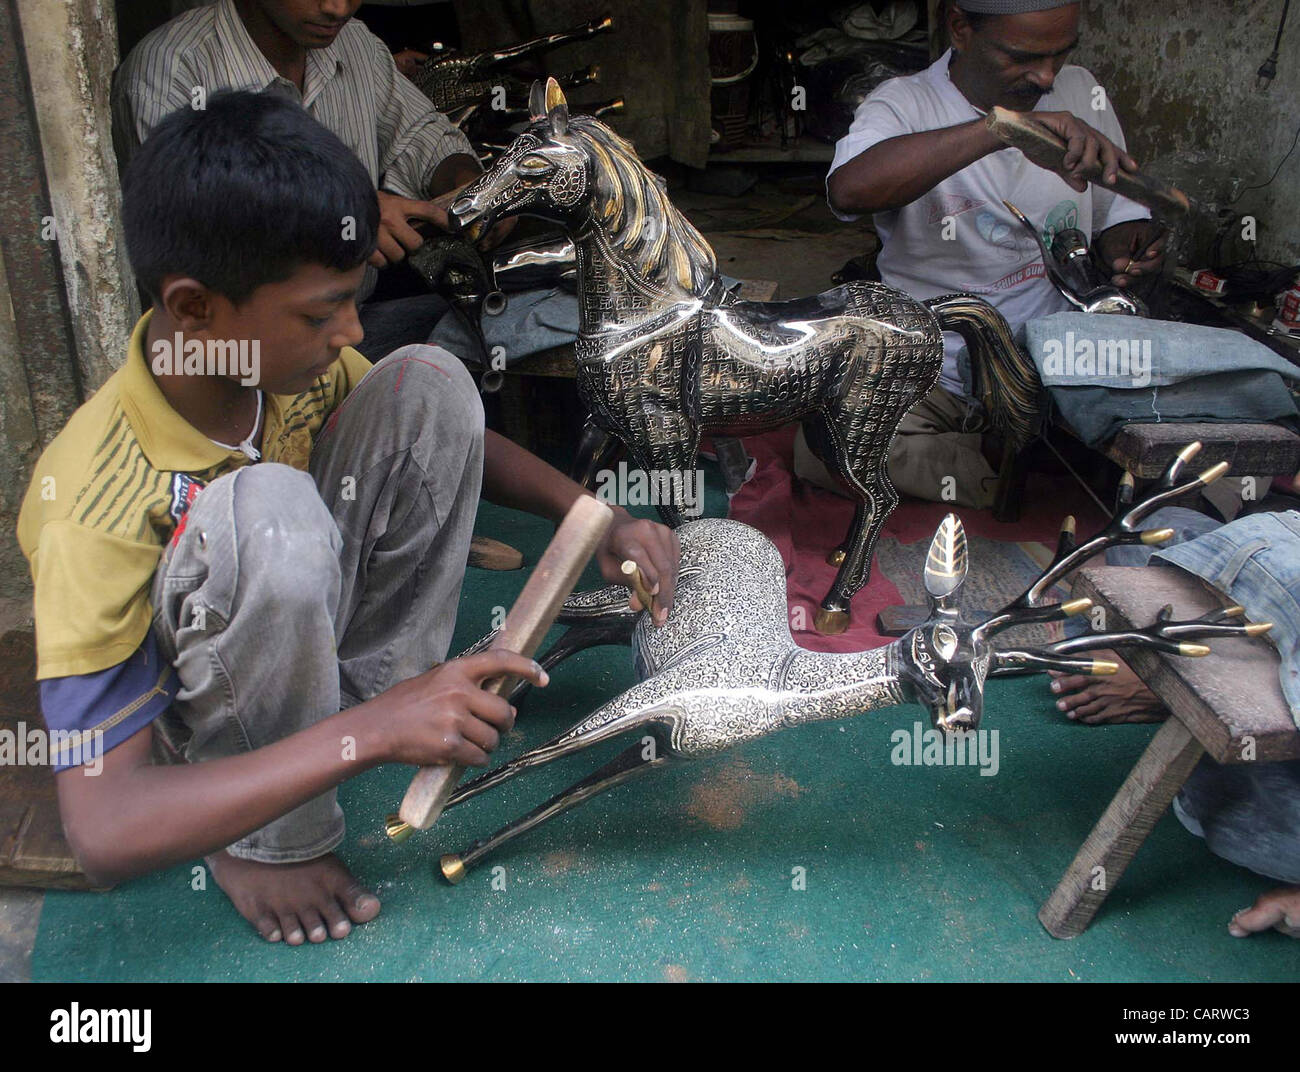 Artisans Give Final Touch To Brass Made Home Decoration Items At A Workshop  In Karachi On Monday, April 16, 2012.